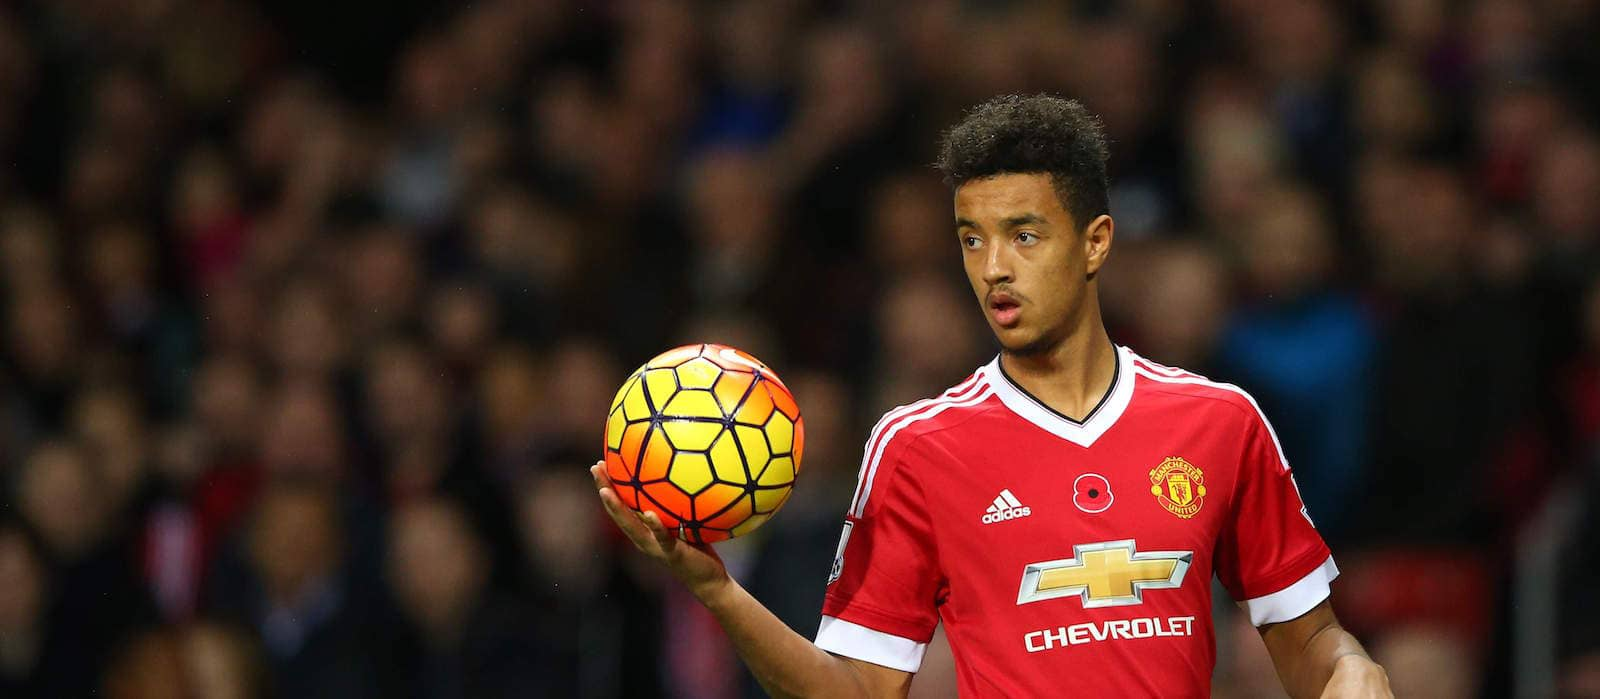 Ajax interested in signing Cameron Borthwick-Jackson this summer – report